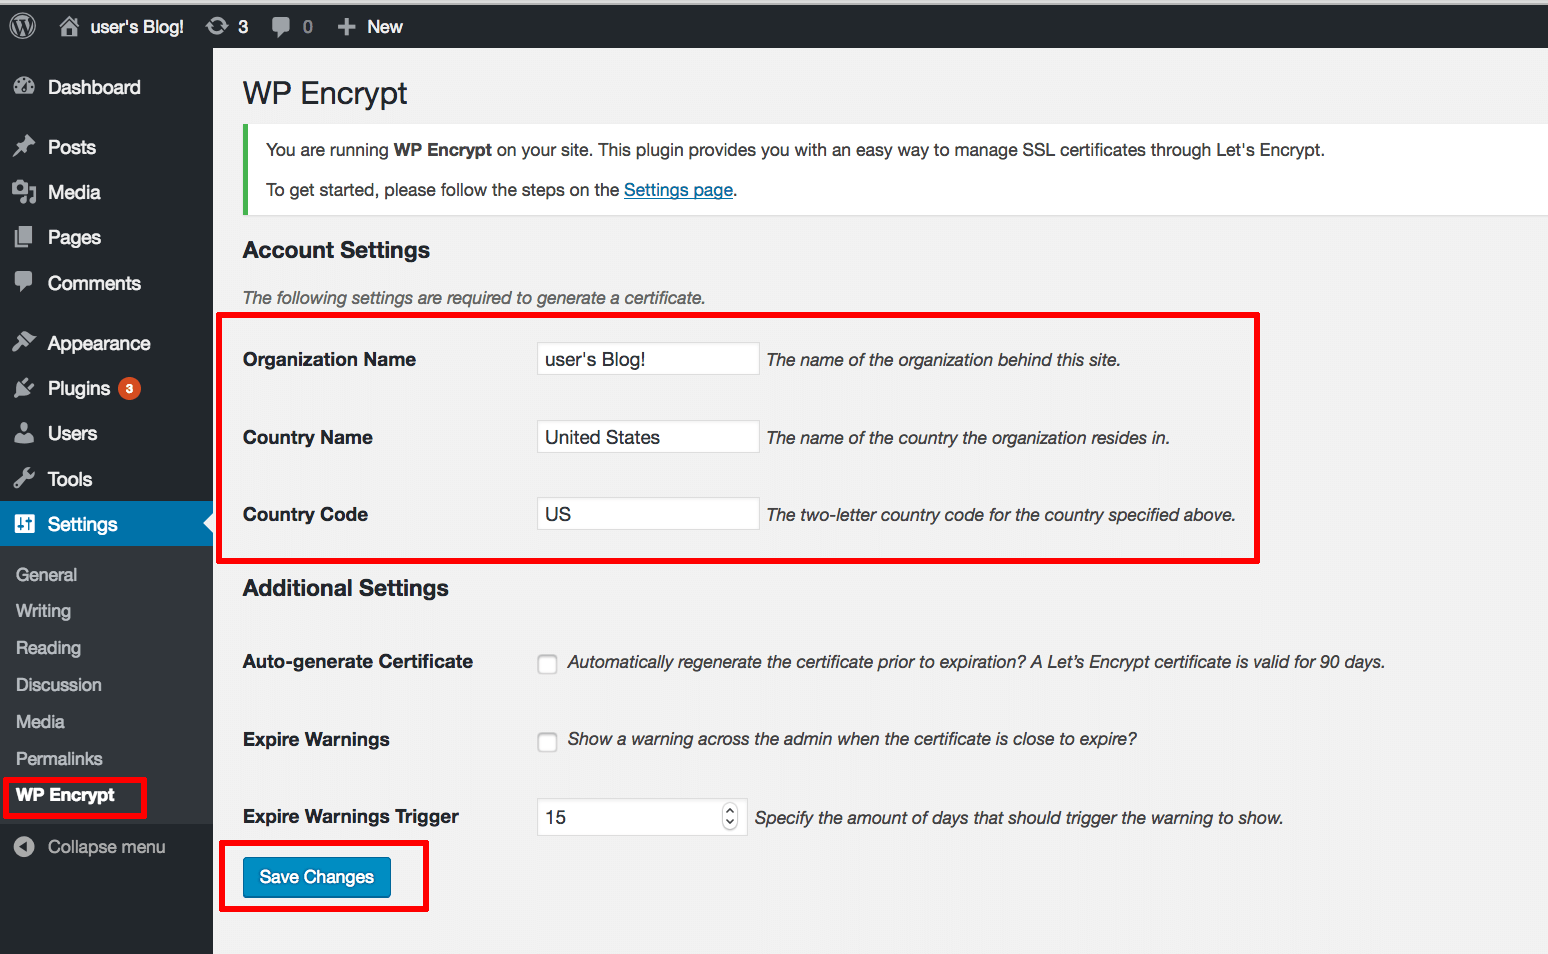 WP Encrypt account settings